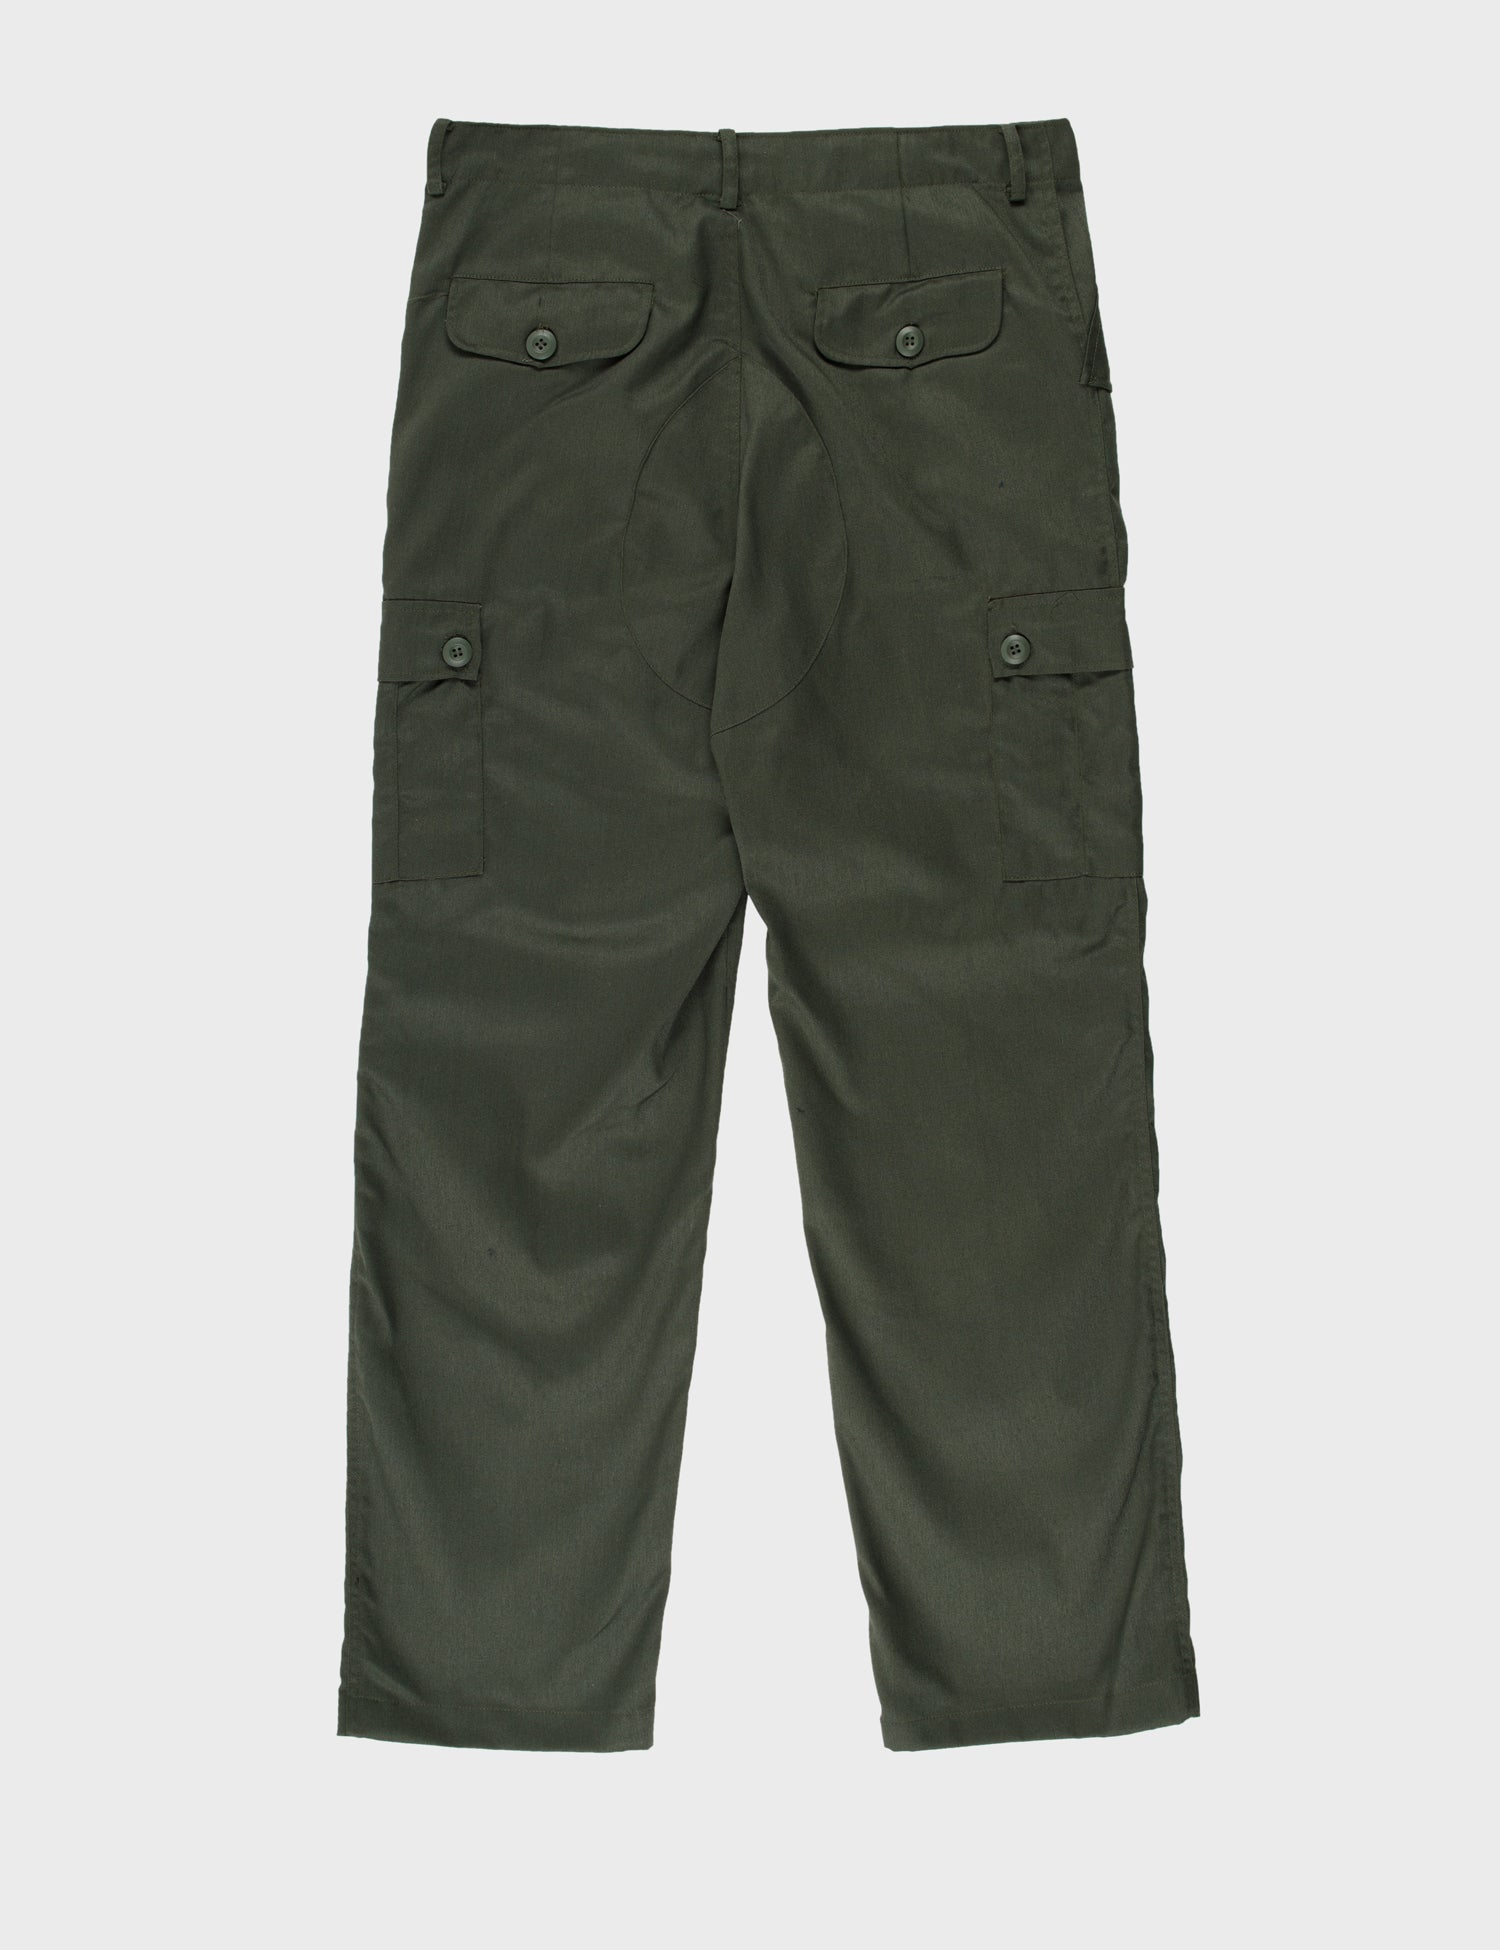 products/tth_2021_bottoms-cargo-olive-02.jpg